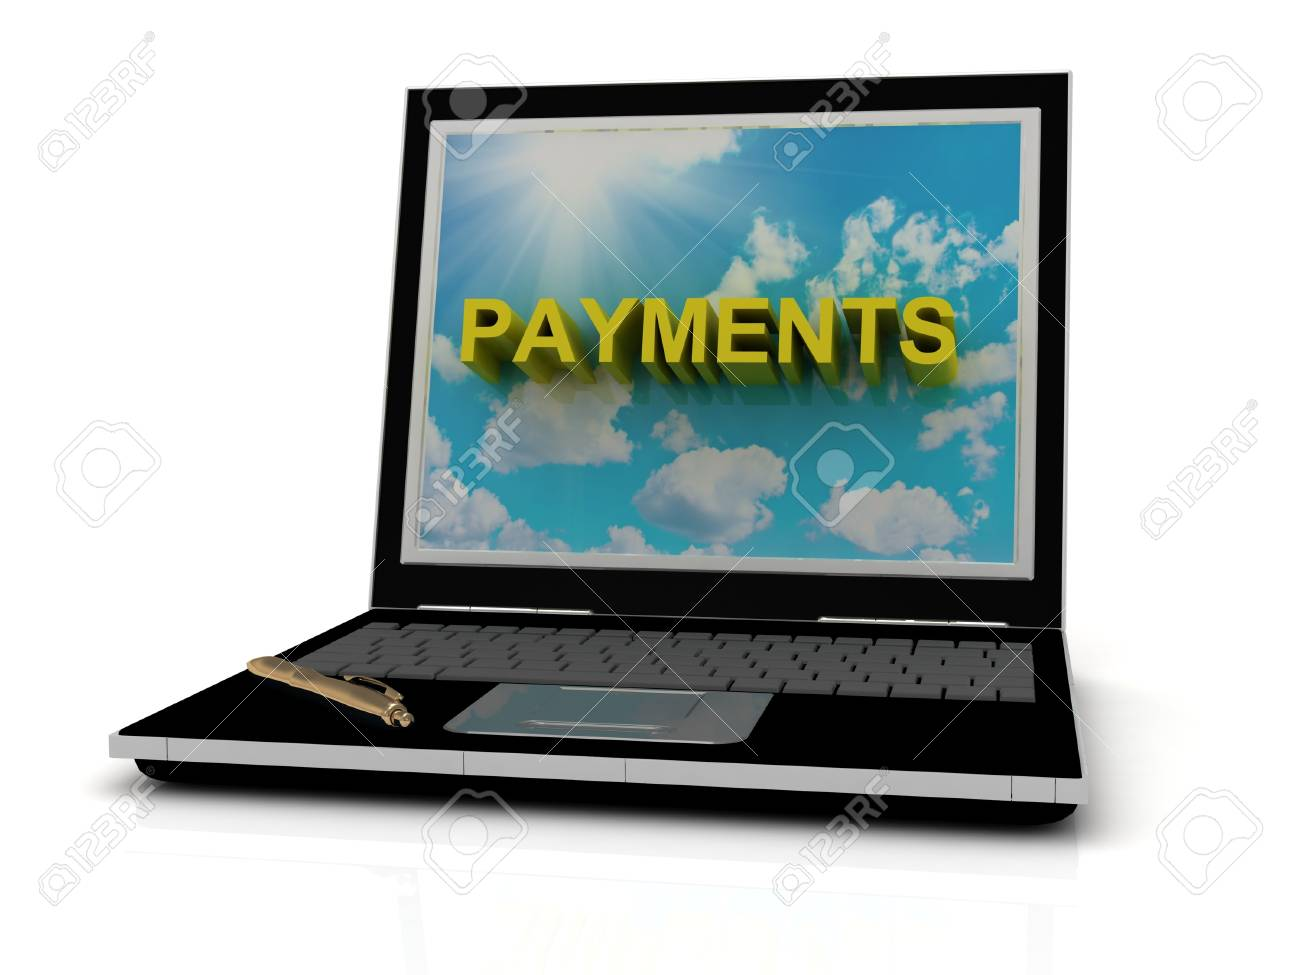 PAYMENTS sign on laptop screen of the yellow letters on a background of sky, sun and clouds Stock Photo - 14861141